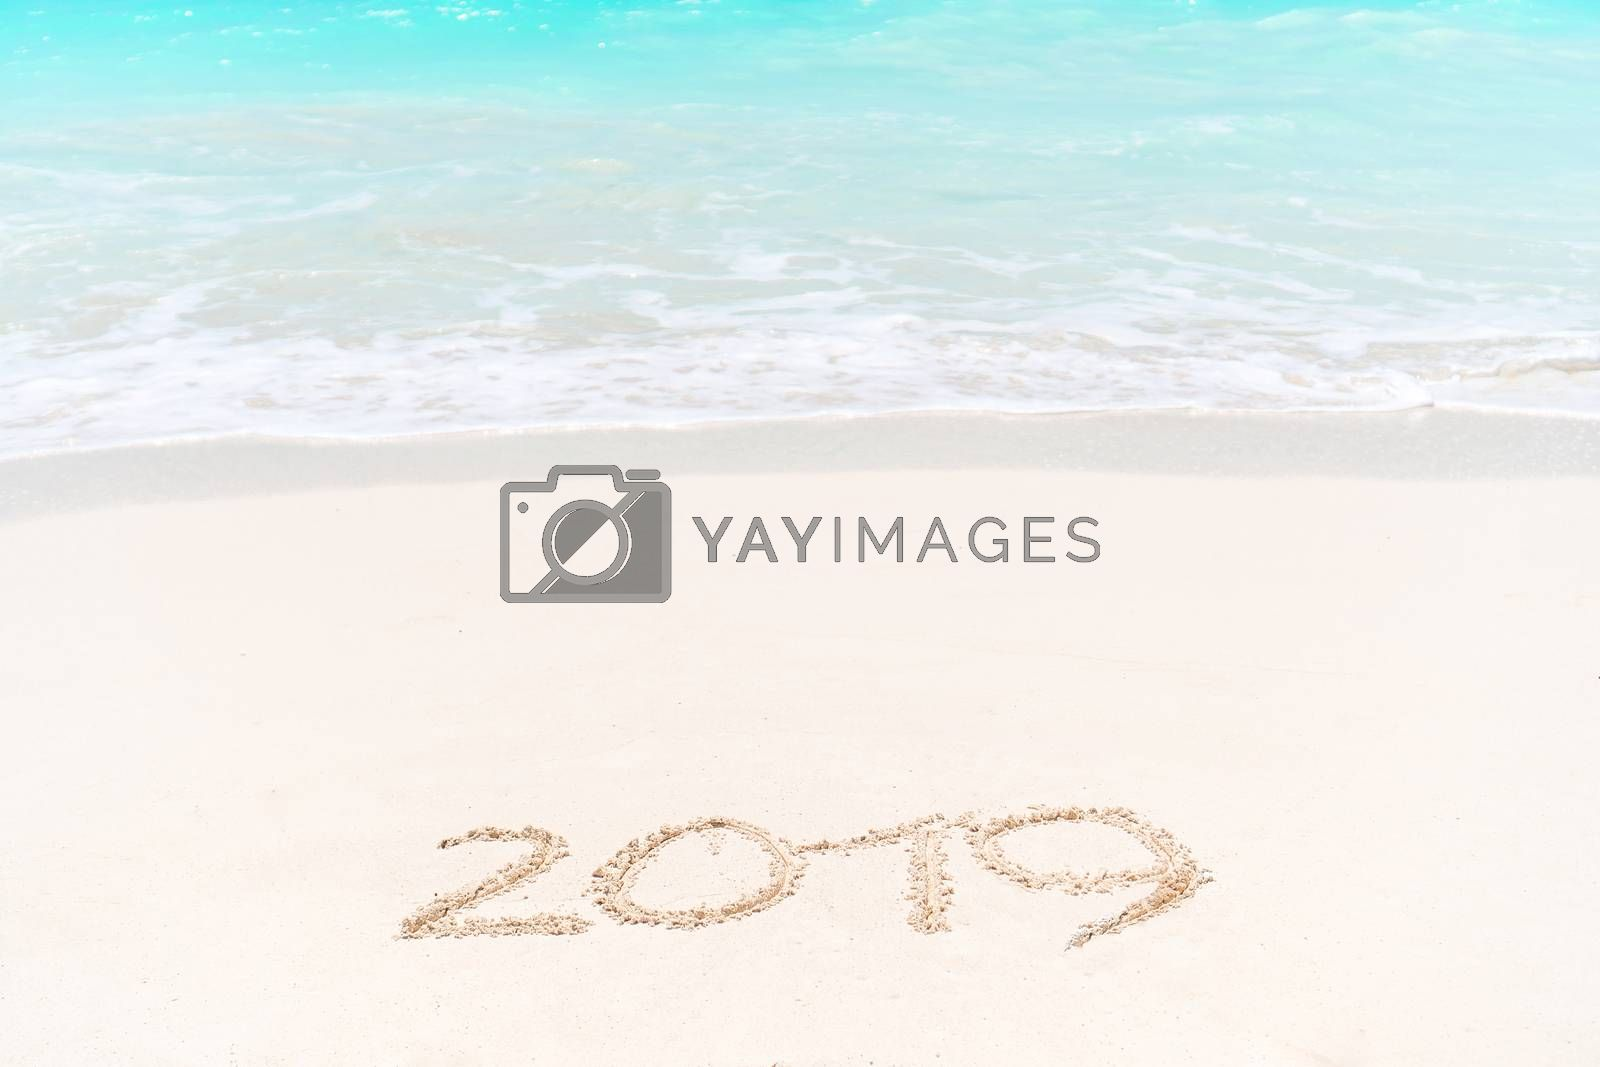 2019 handwritten on sandy beach with soft ocean wave on background by travnikovstudio